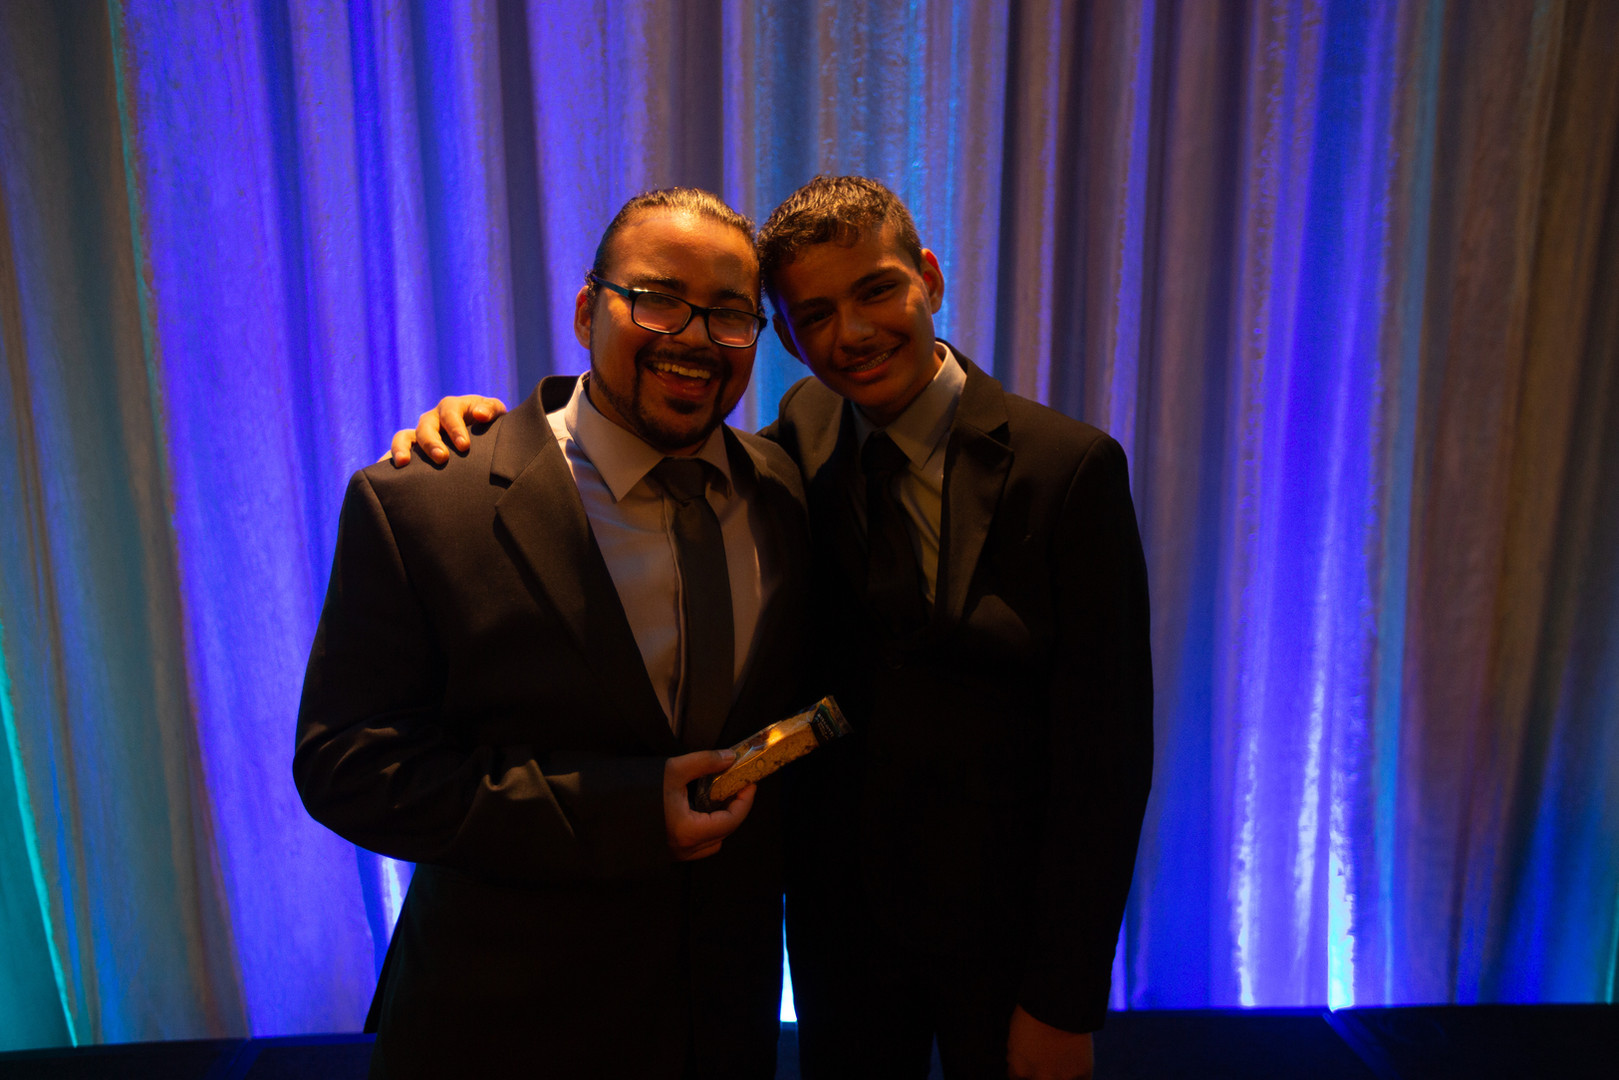 Father and son smiling and holding award